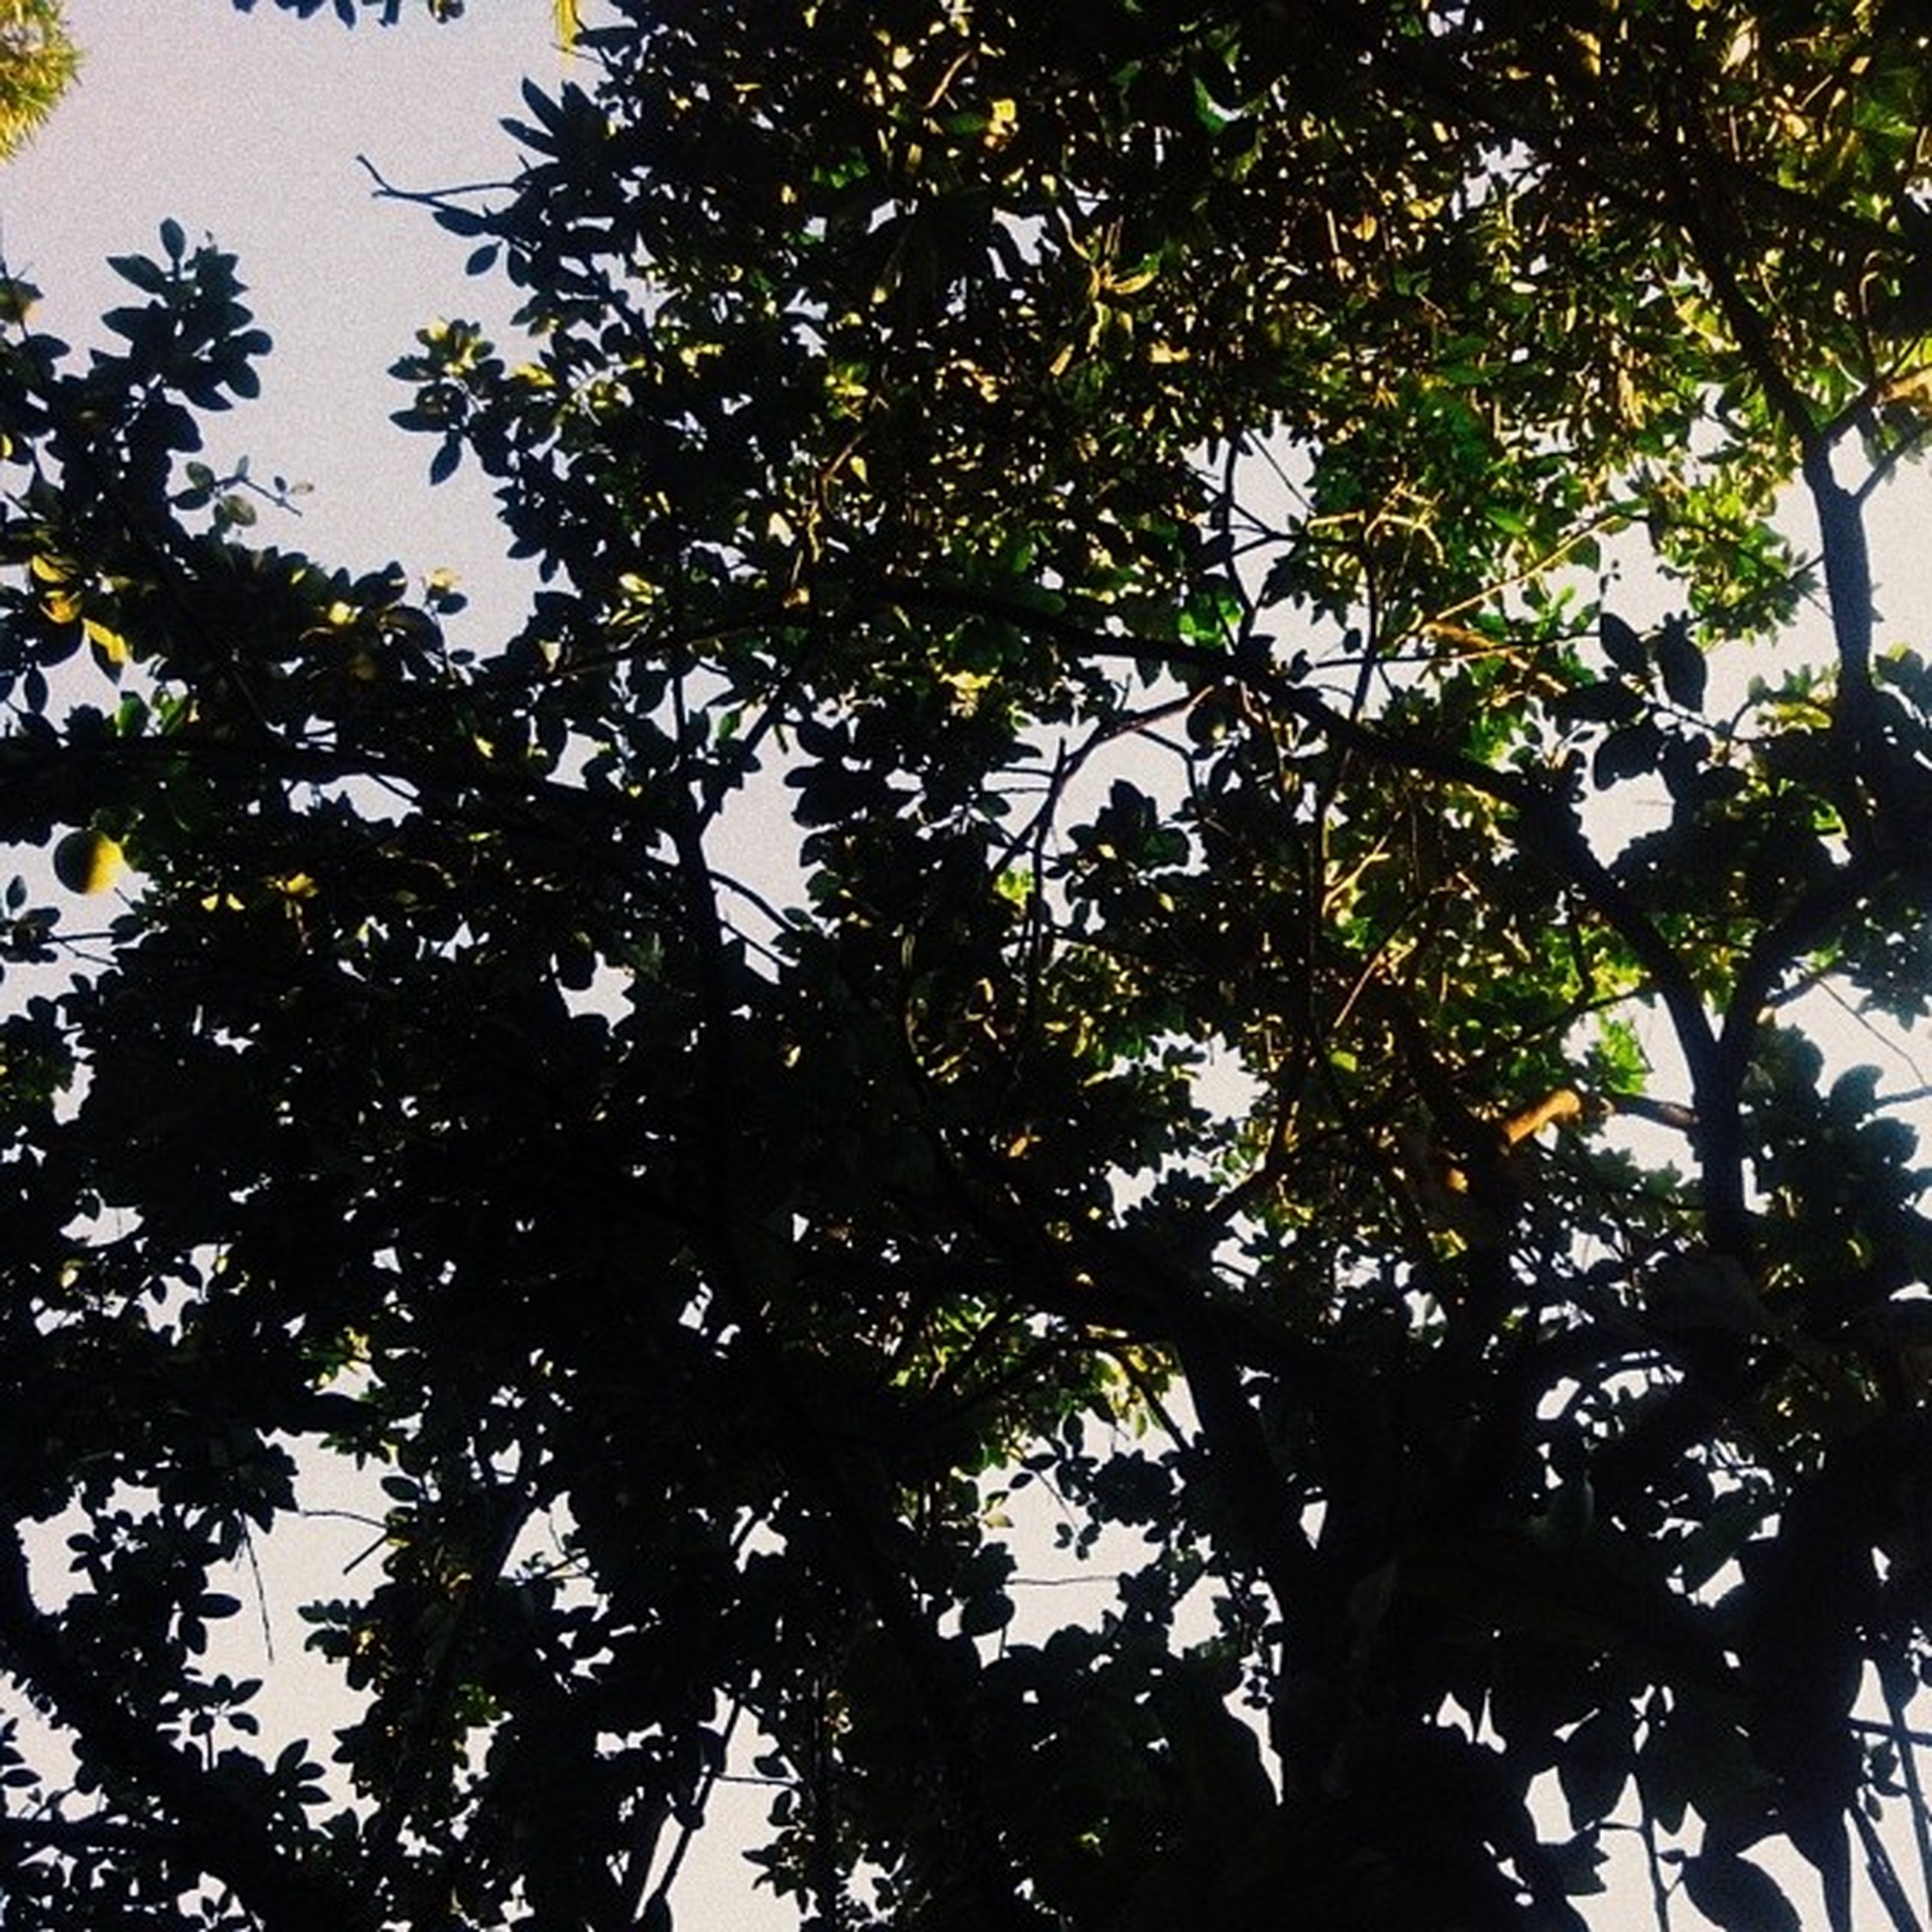 tree, low angle view, branch, growth, nature, leaf, beauty in nature, tranquility, green color, sky, day, outdoors, backgrounds, no people, clear sky, full frame, directly below, lush foliage, tree trunk, high section